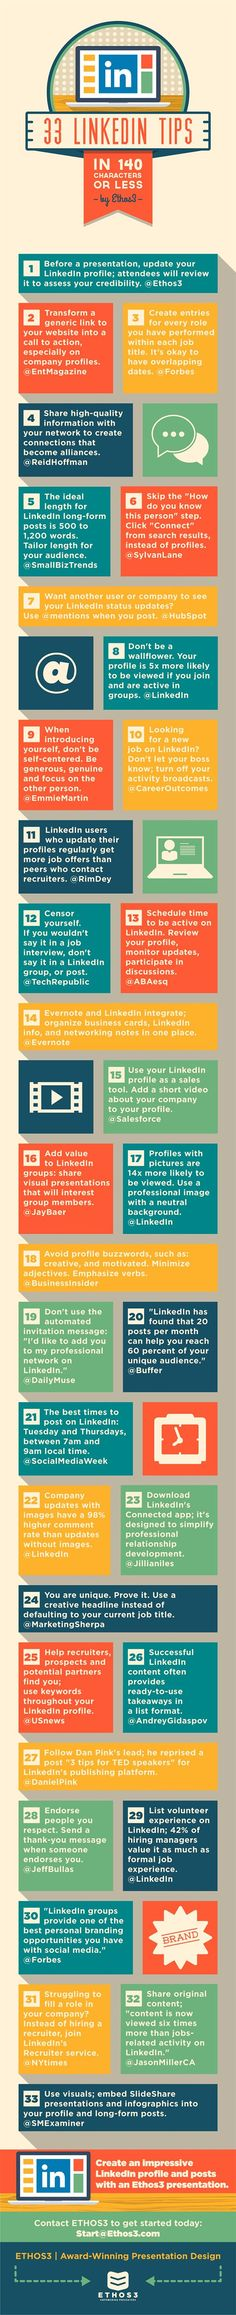 33 Quick LinkedIn Tips From the World's Top Social Media Experts